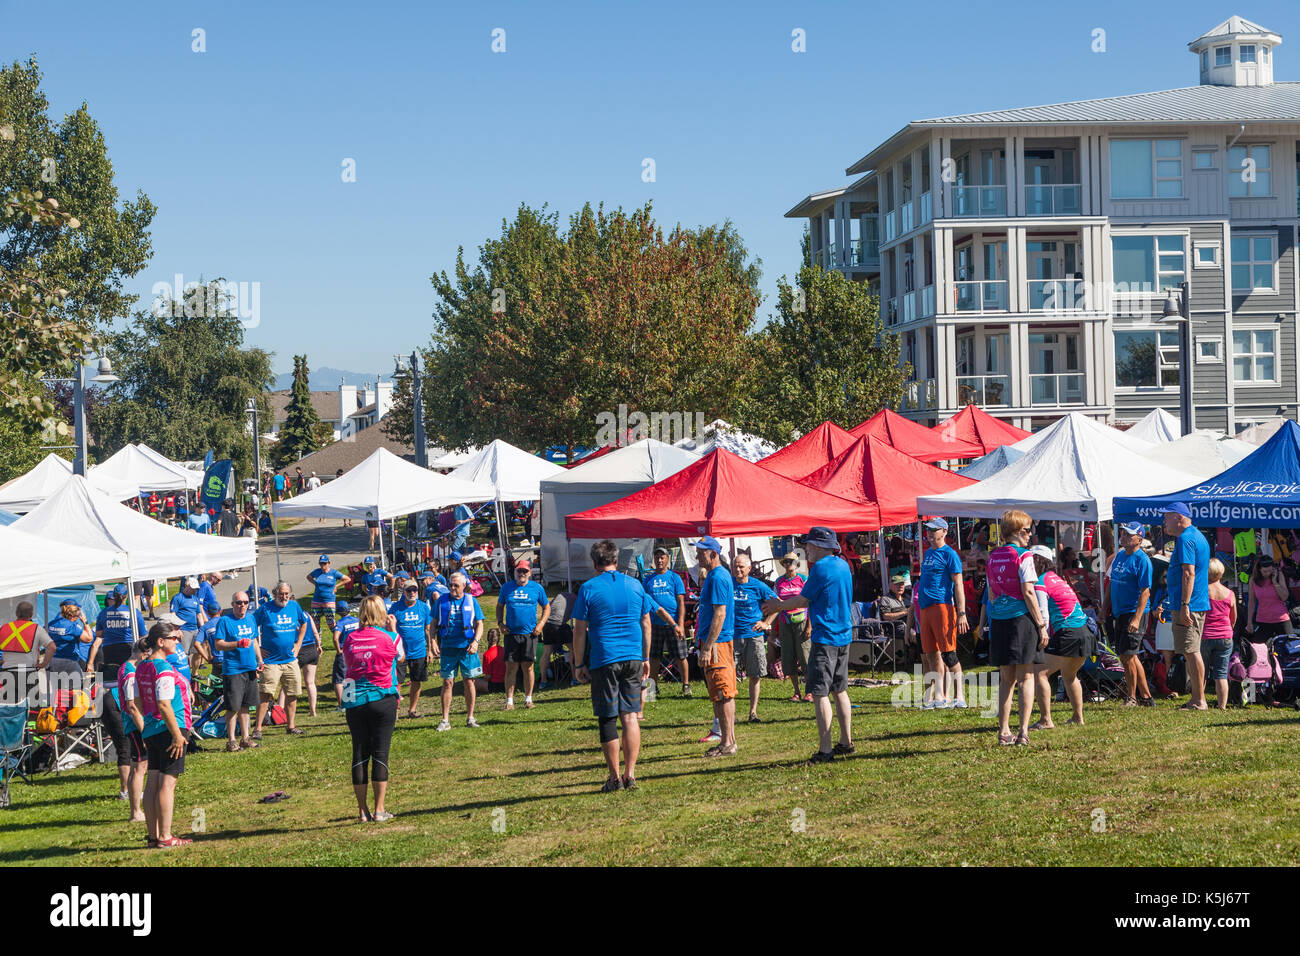 Team tents and pre-race workout at the 2017 Steveston Dragon Boat Festival & Team tents and pre-race workout at the 2017 Steveston Dragon Boat ...